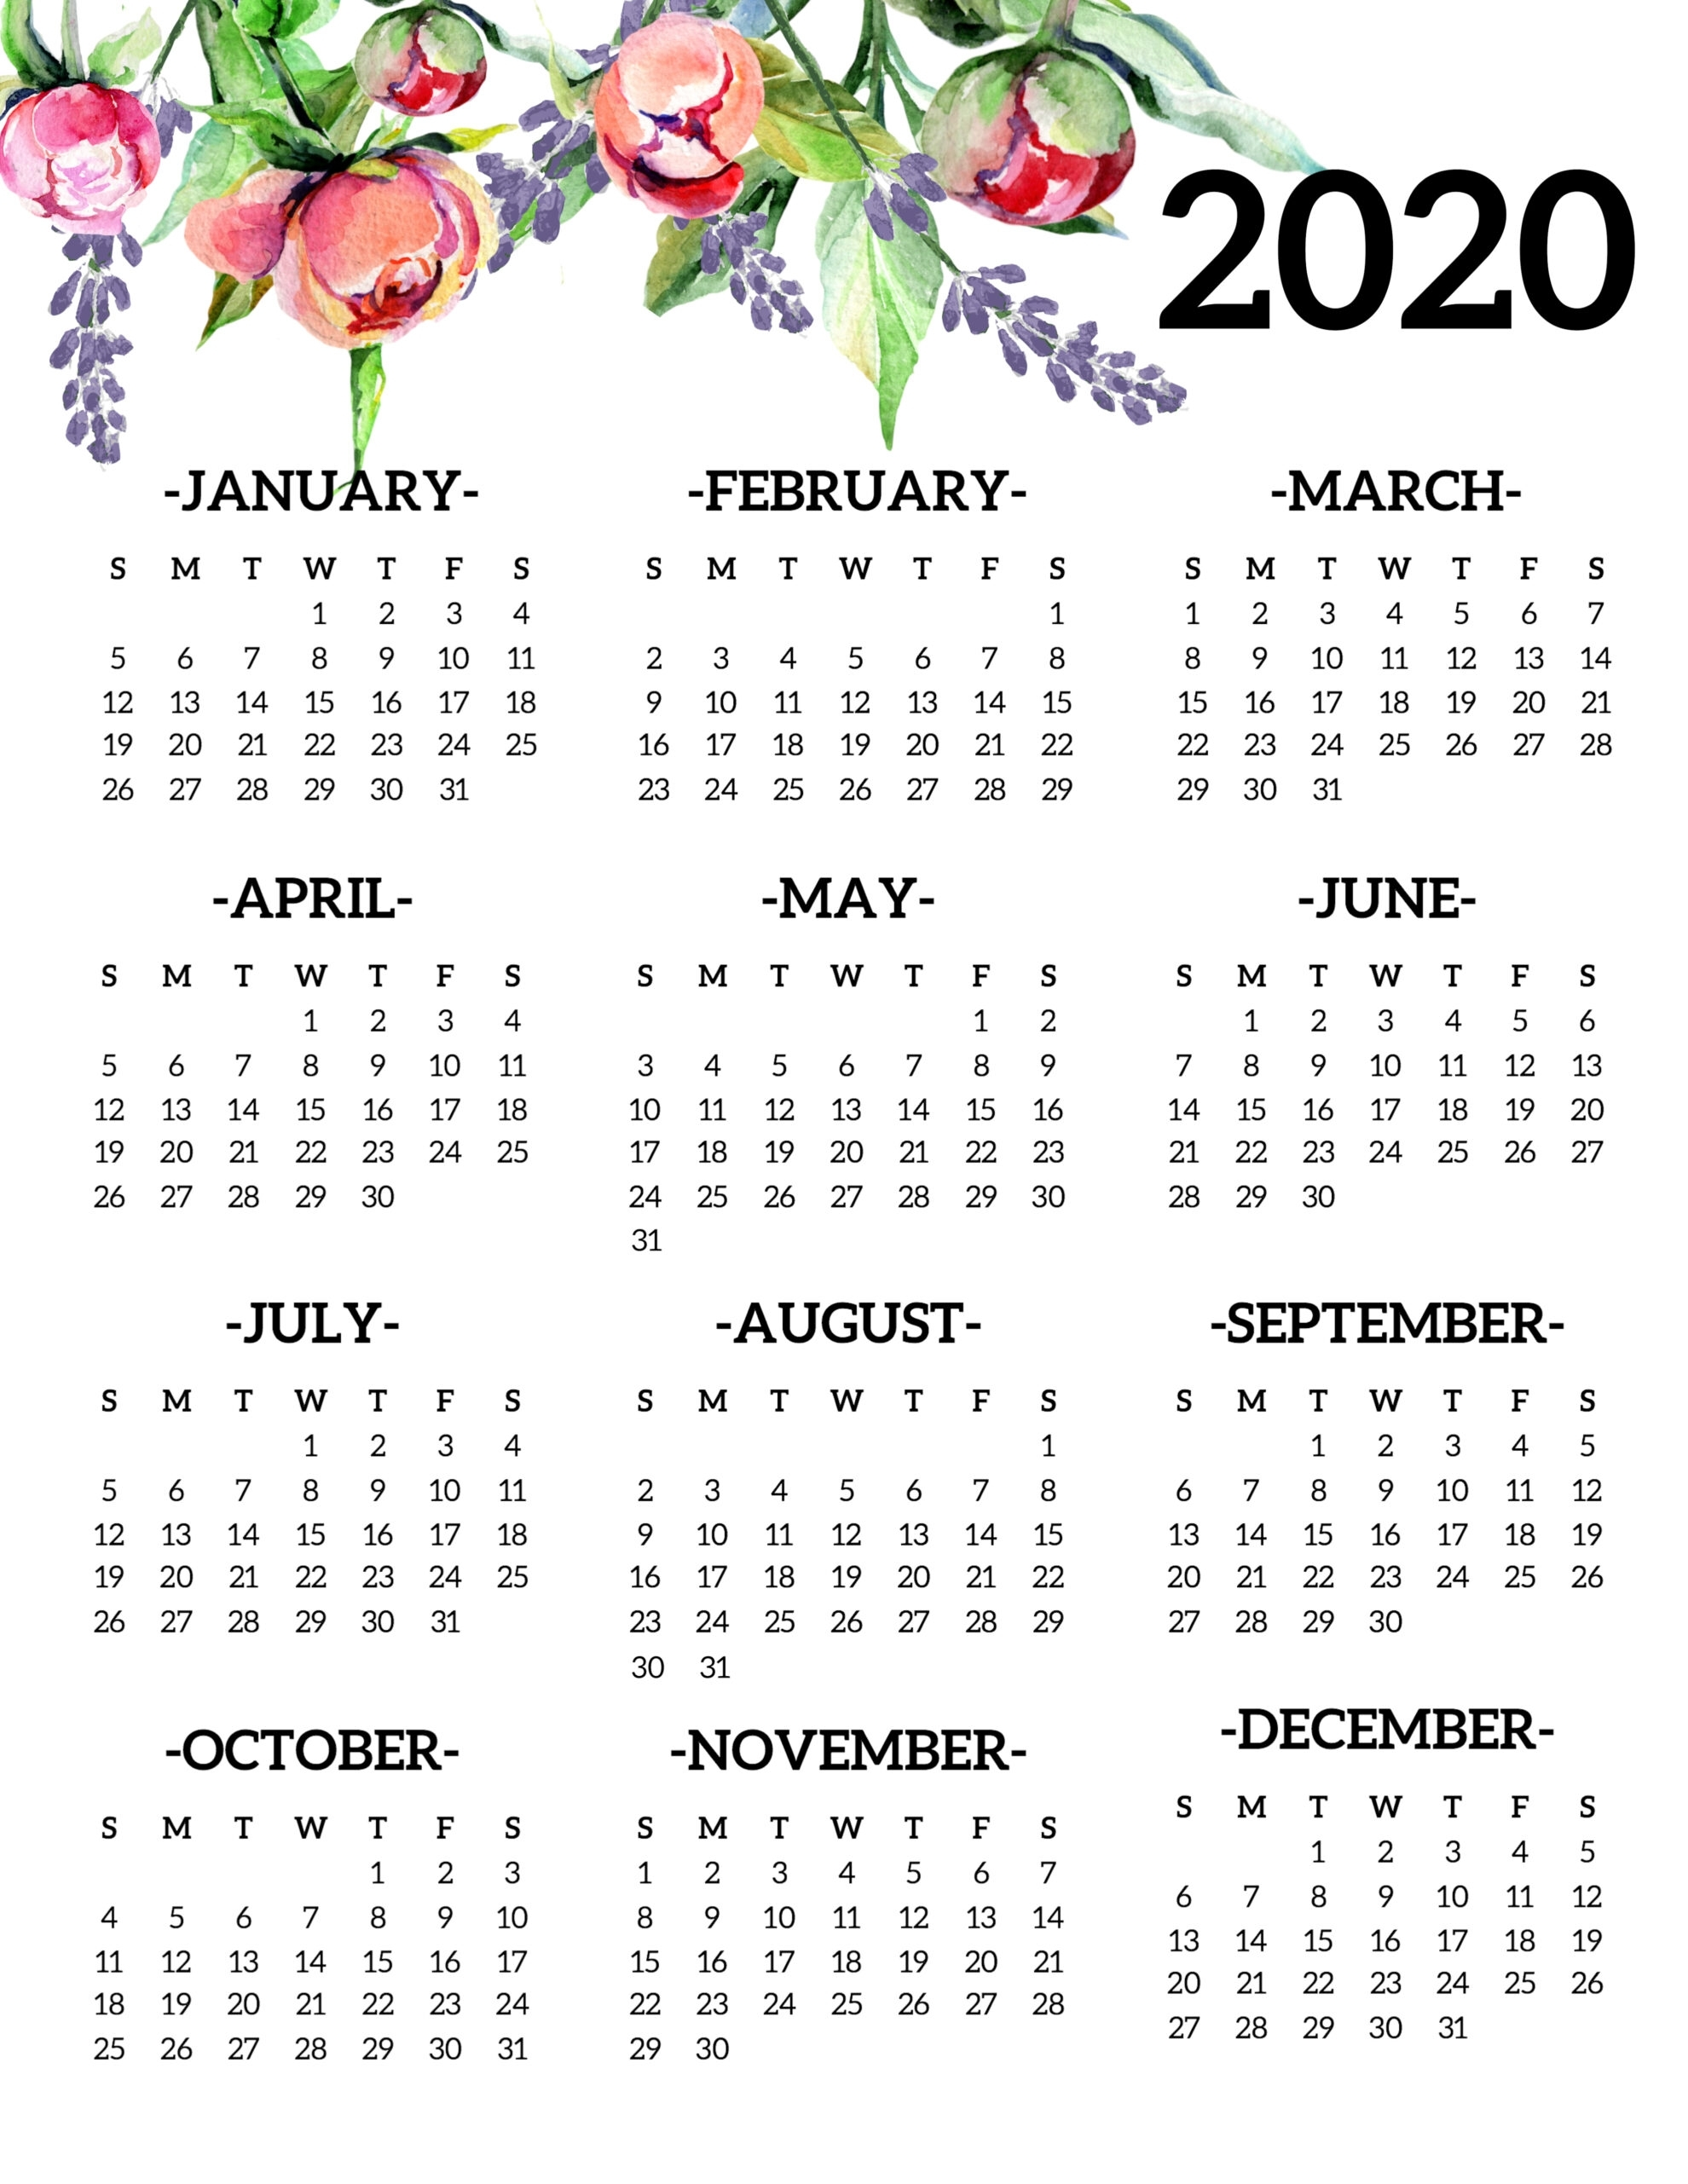 Free Printable 2020 Calendar Yearly One Page Floral - Paper inside Printable 2020 Calender At A Glance